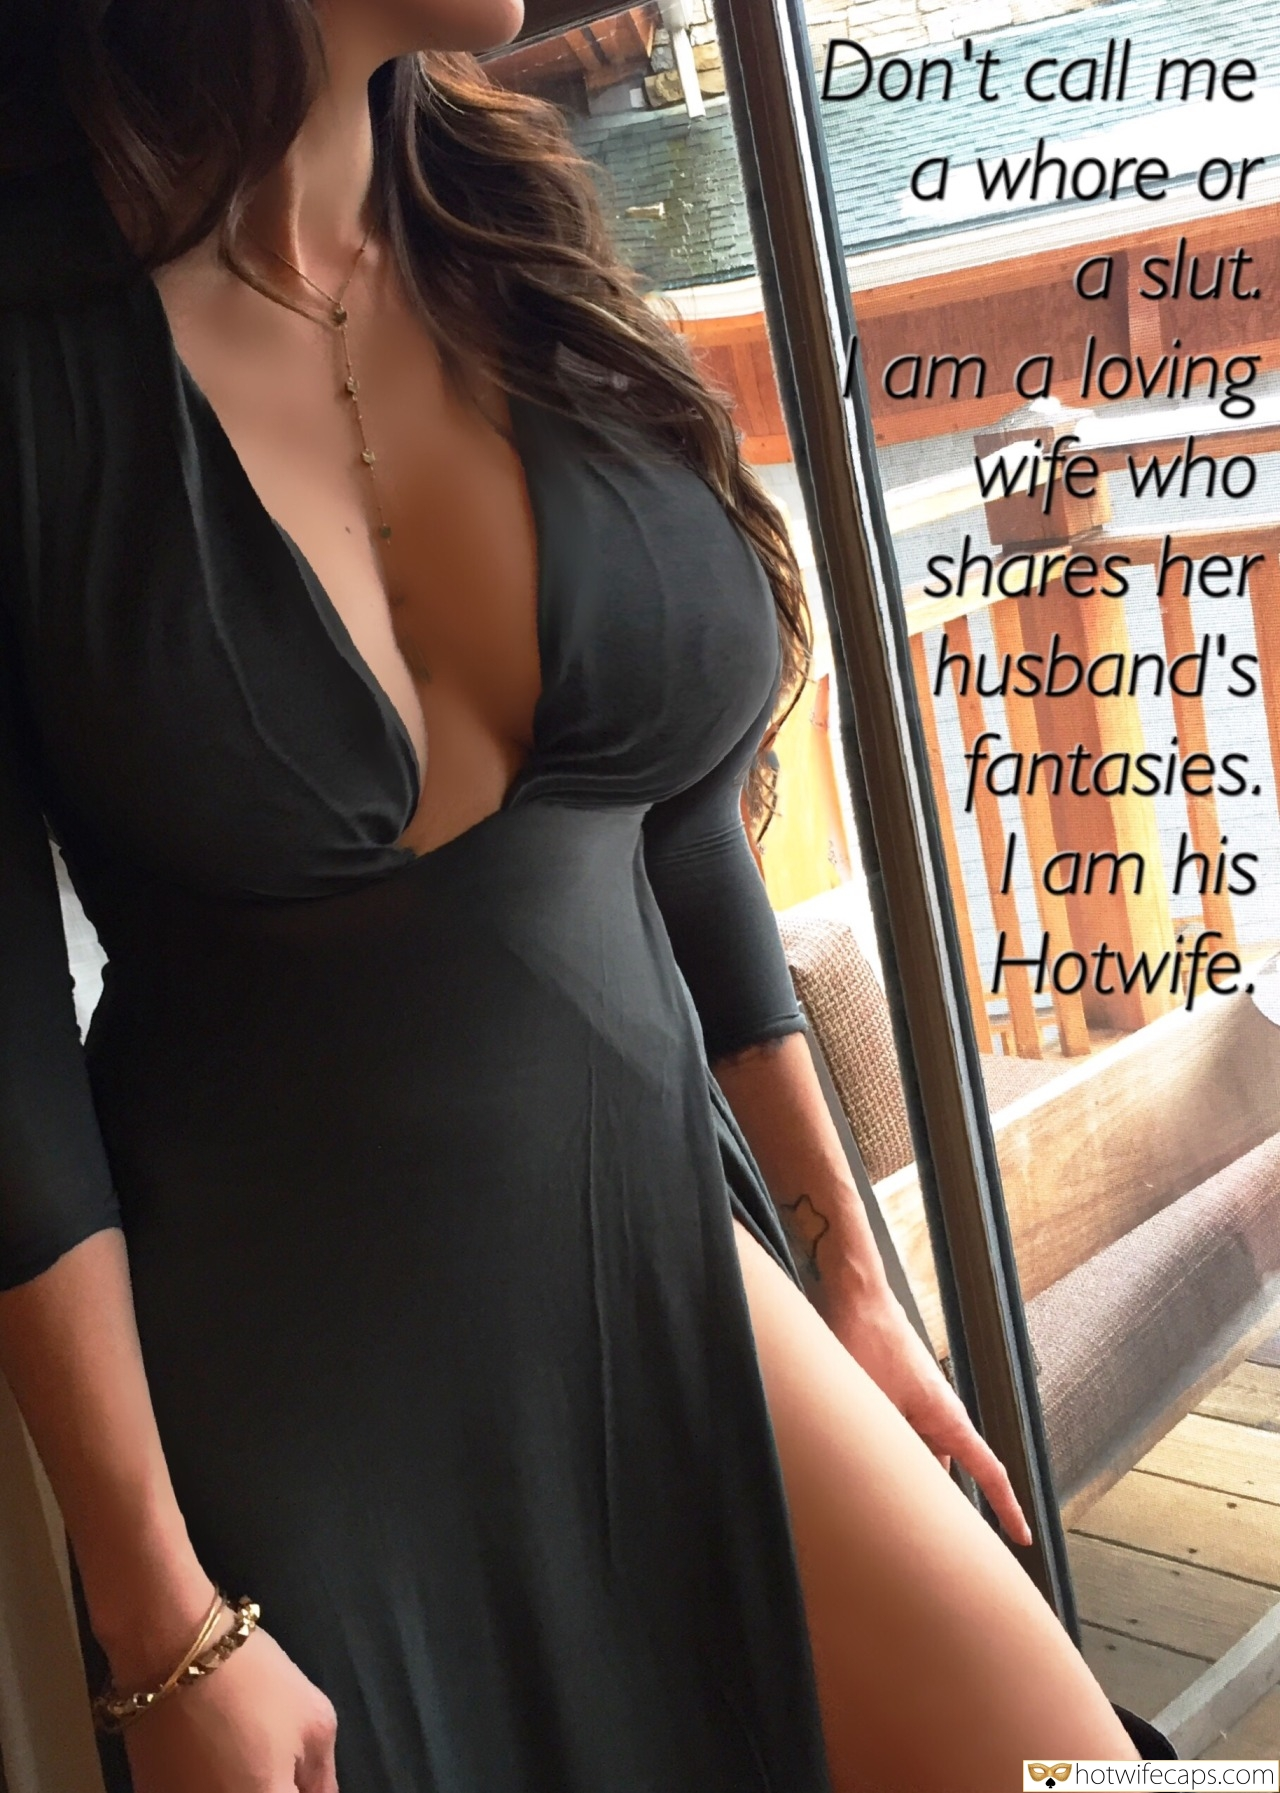 Sexy Memes hotwife caption: Don't call me a whore or a slut. am a loving wife who shares her husband's fantasies. | am his Hotwife, Curvaceous Brunette Poses in Black Dress by the Window